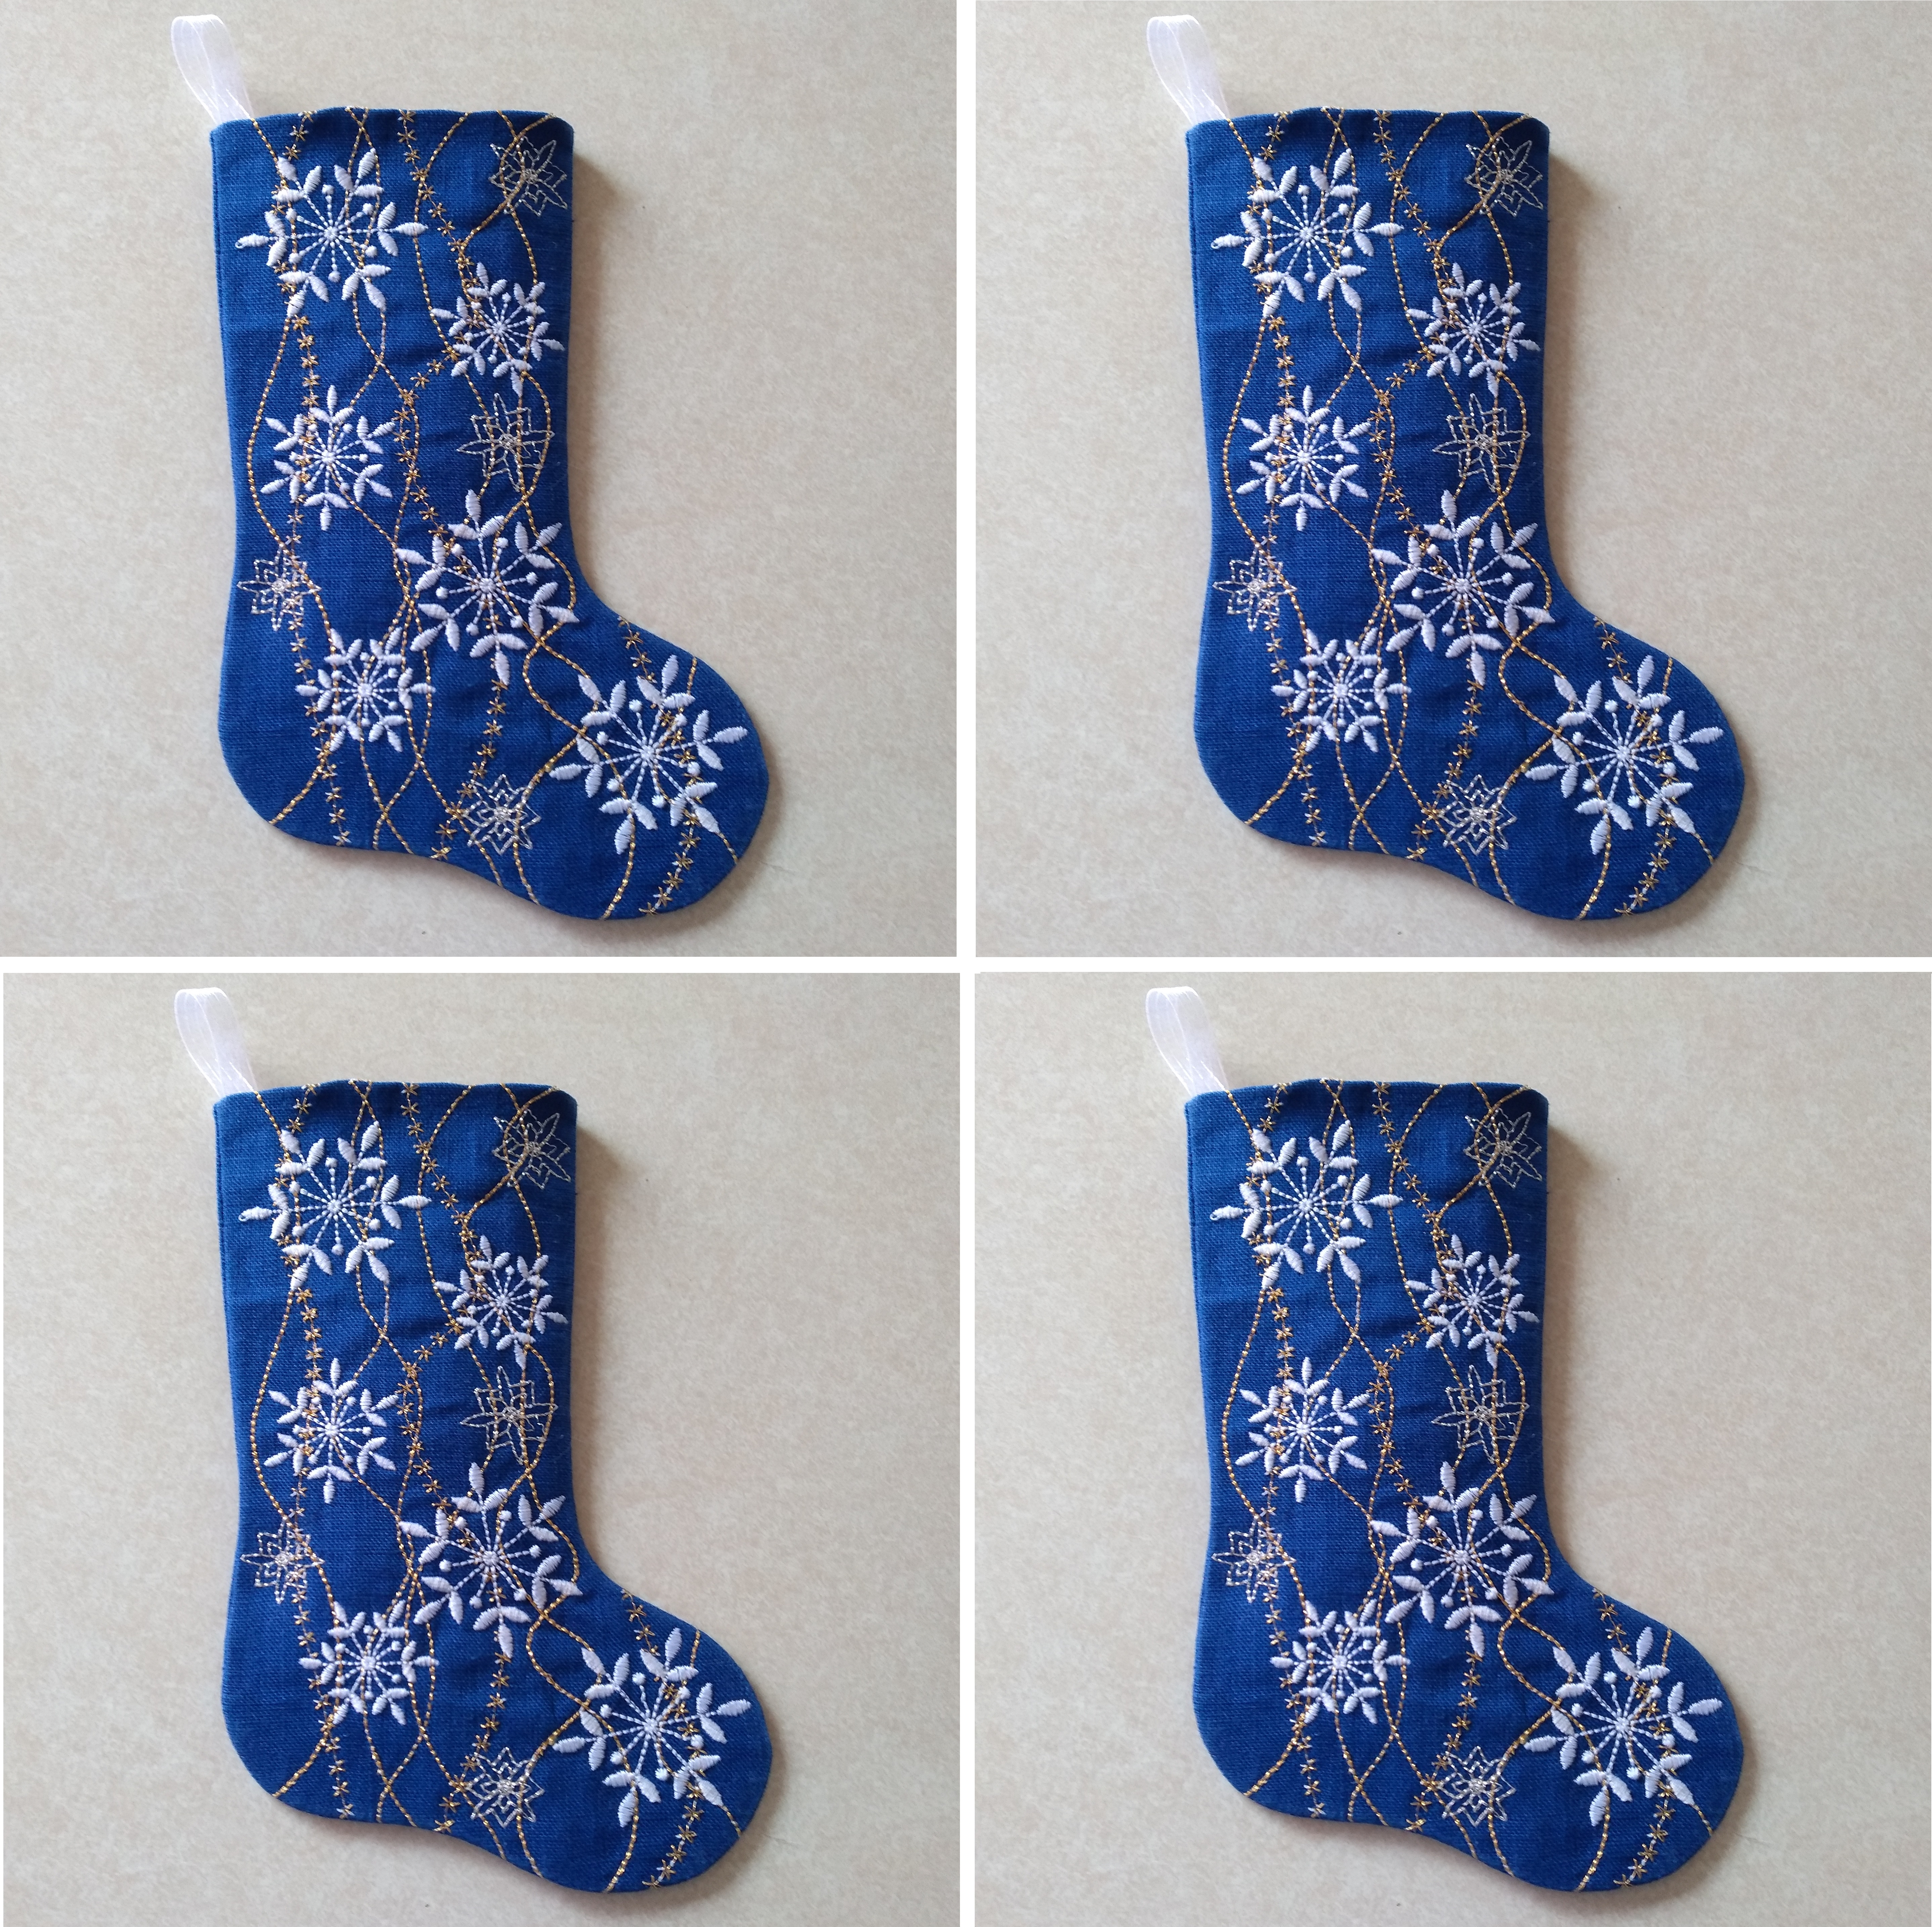 Snowflake Gift Stocking Complete Project Kit, CD & Instructions-7